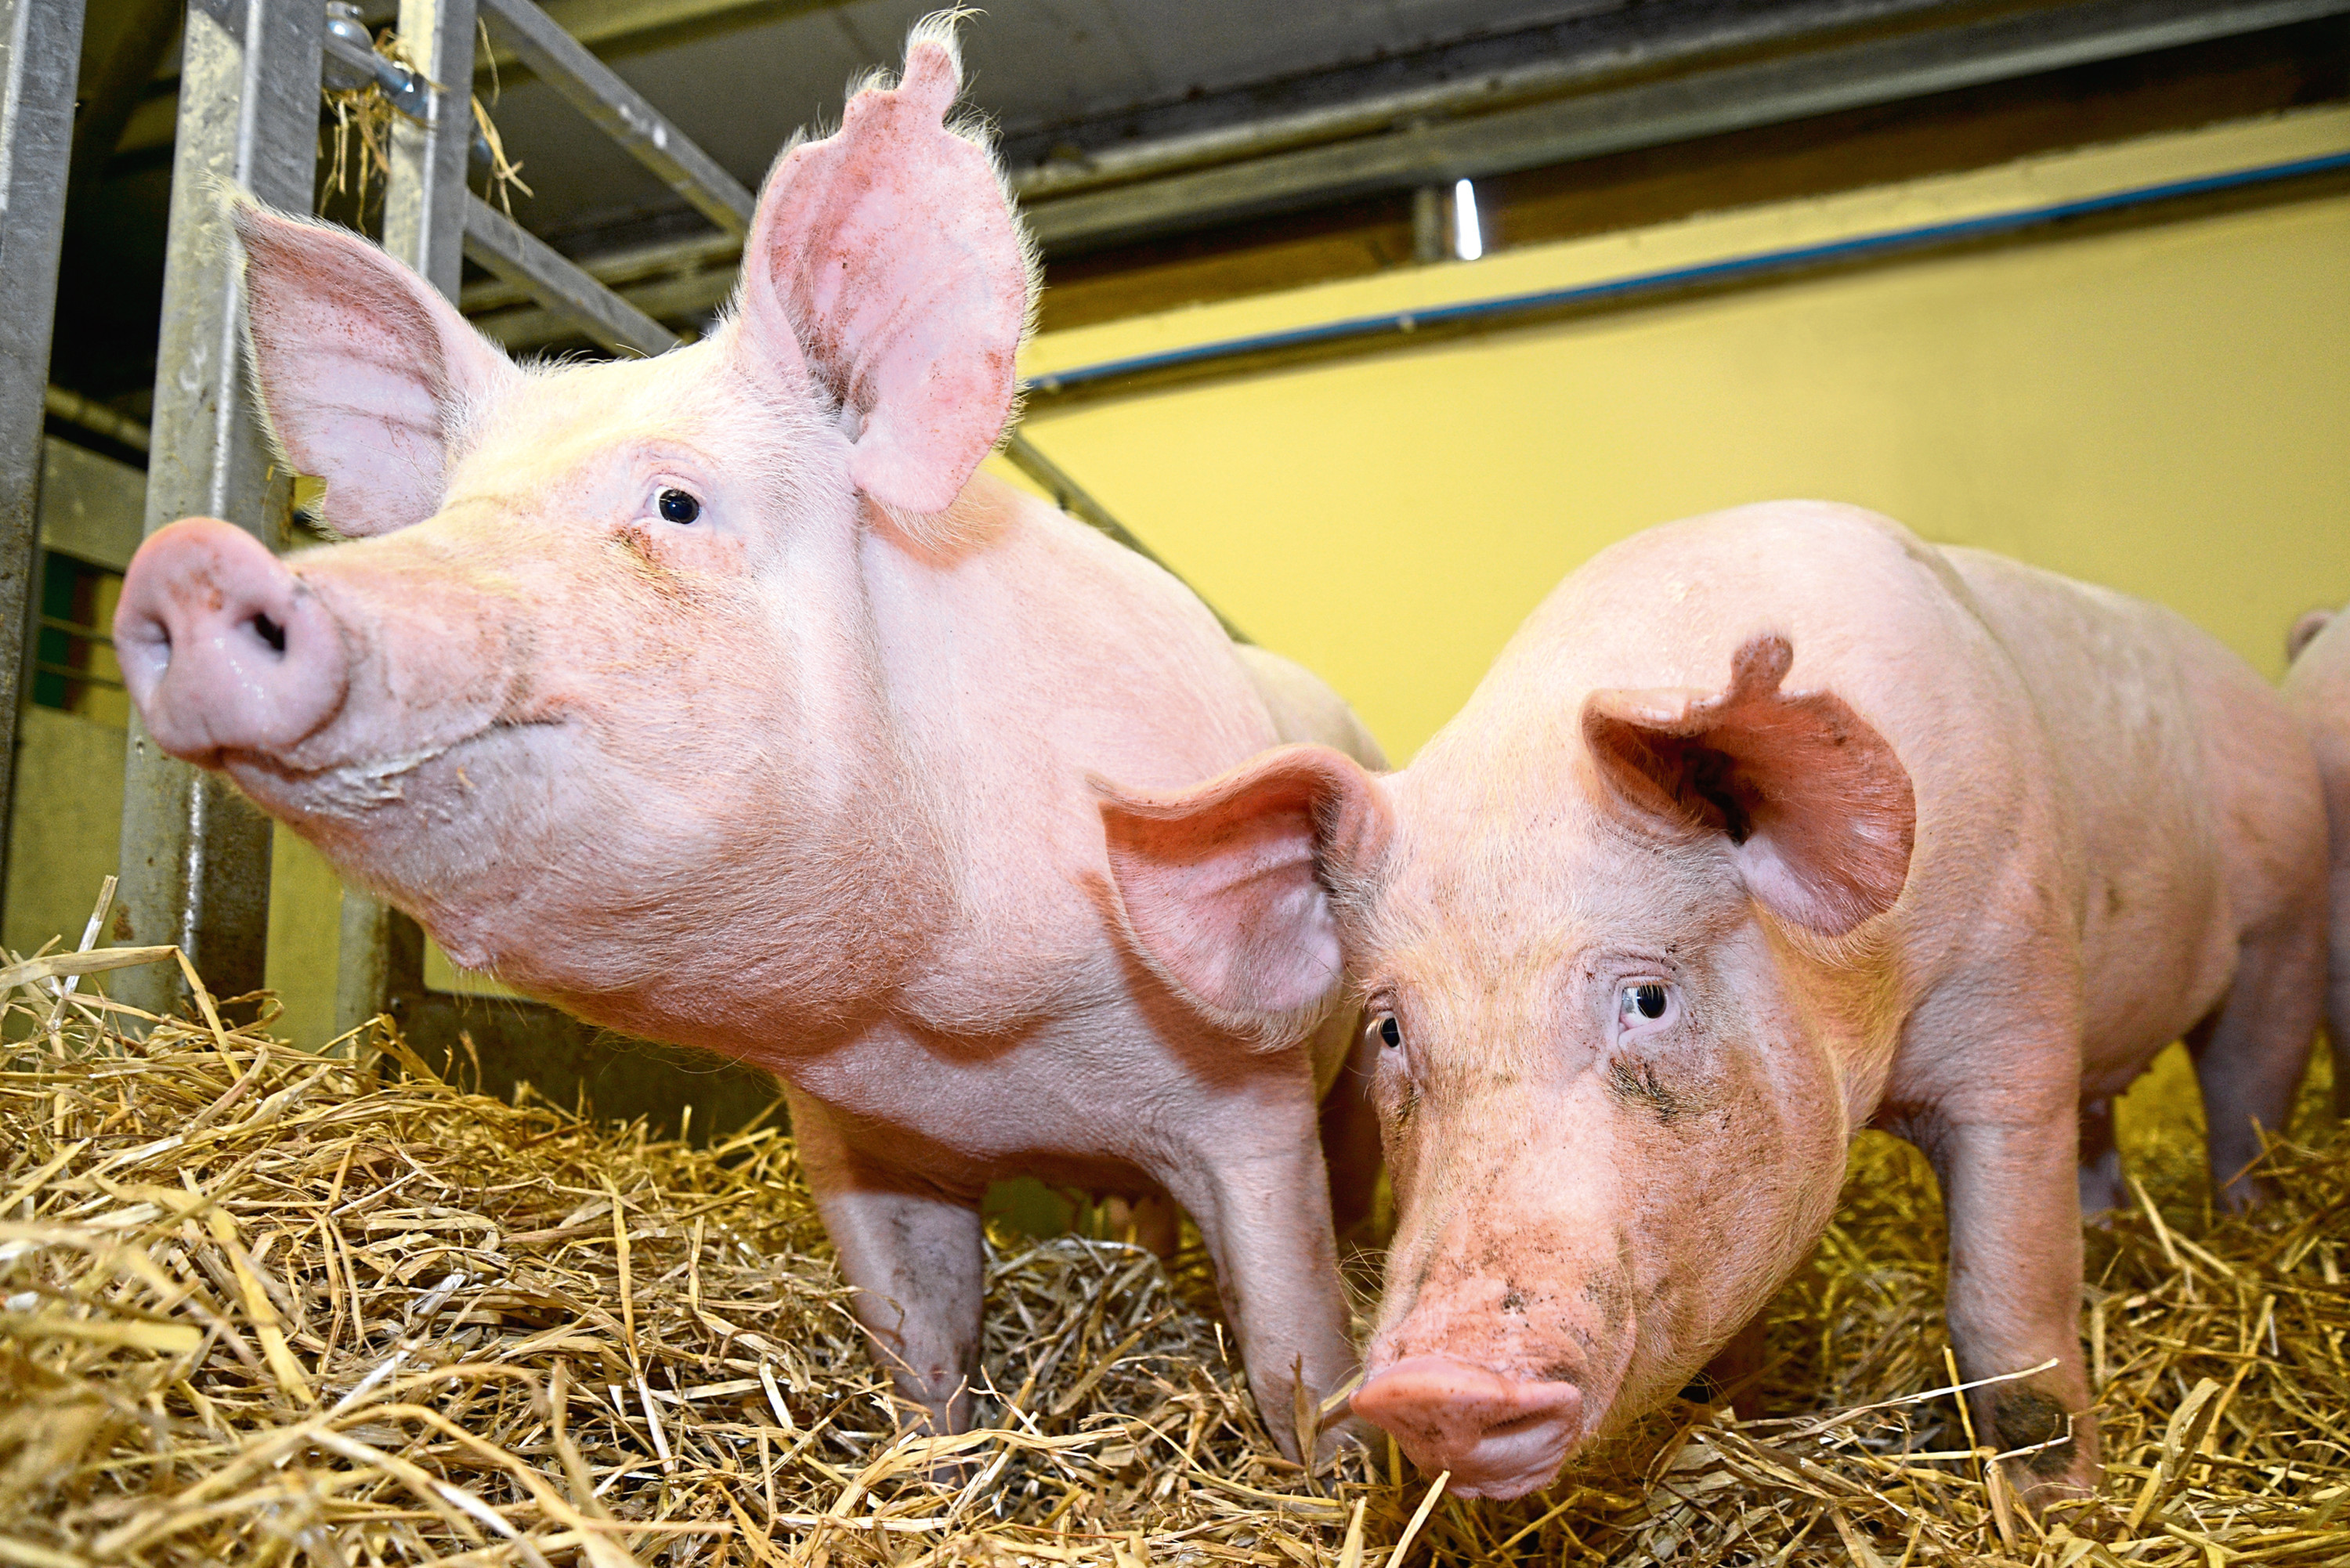 Pigs developed with the use of gene editing were resistant to PRRS and showed no adverse effects during the trials, according to researchers